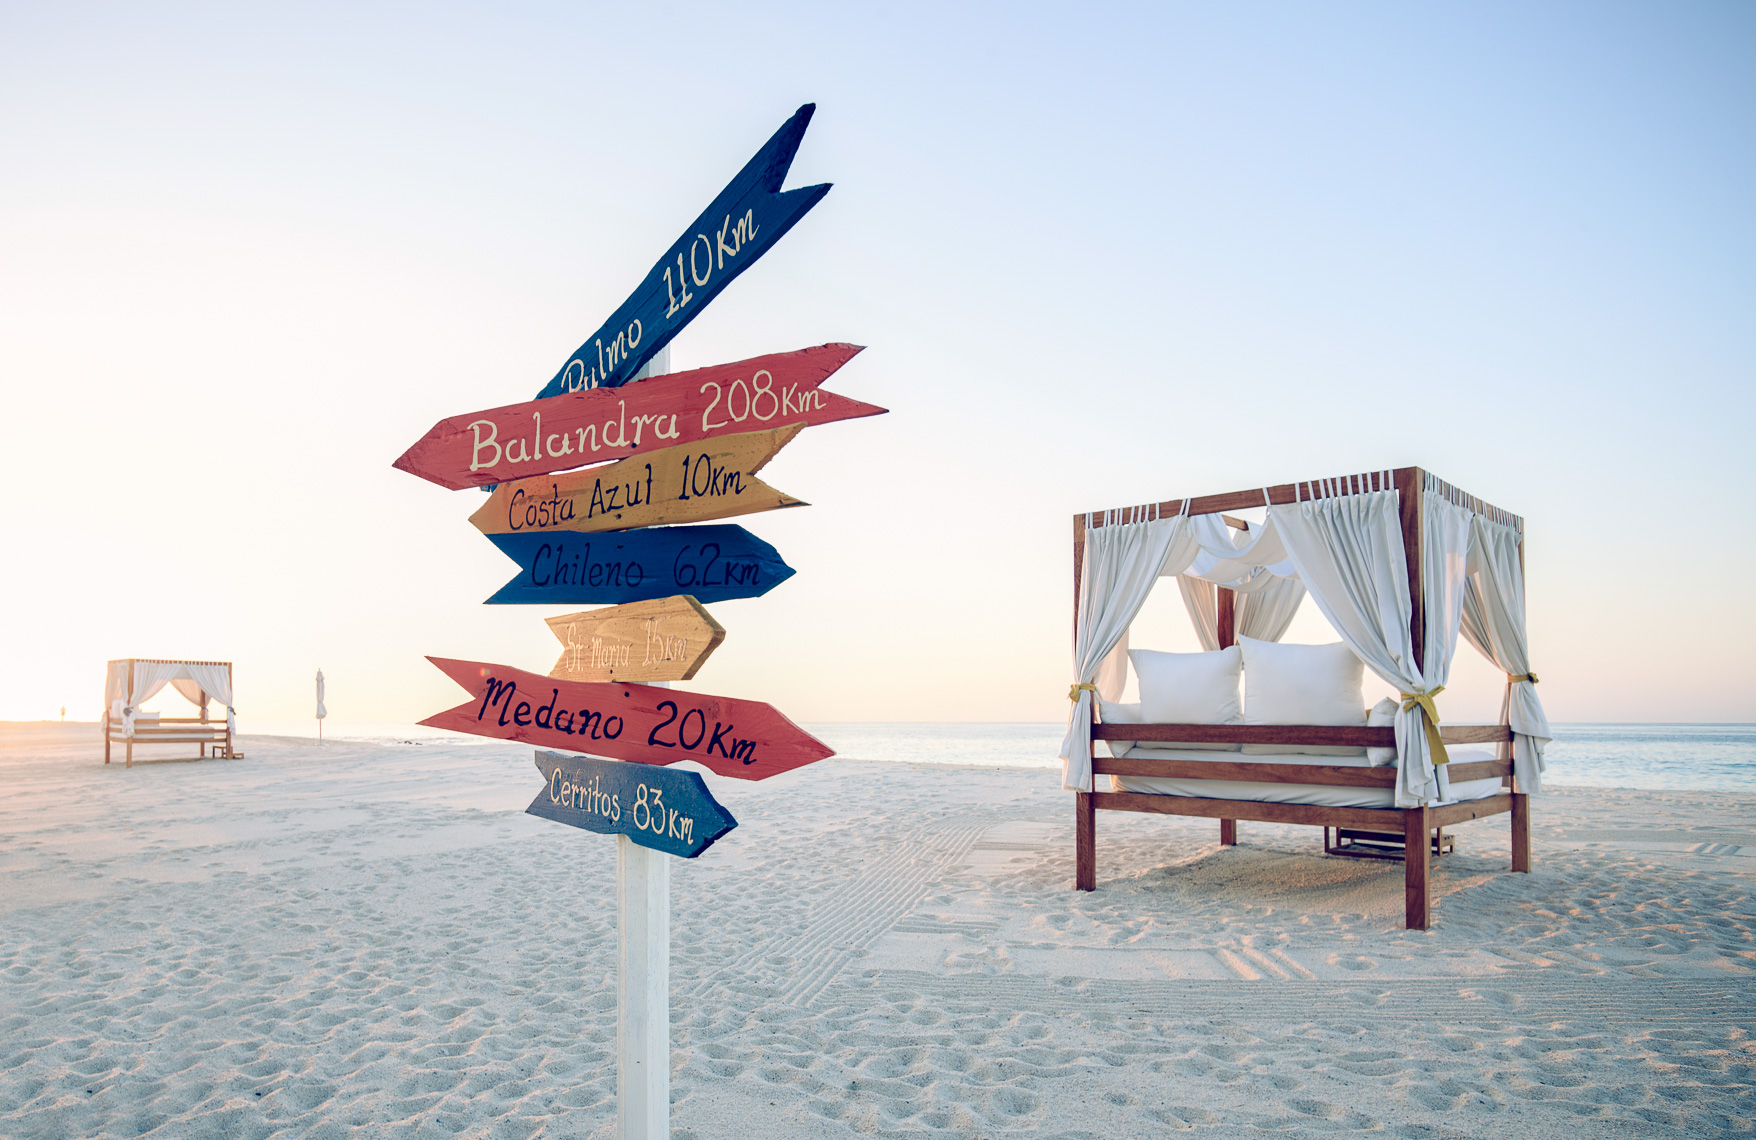 Kevin Steele - A signpost with travel destinations on a beach